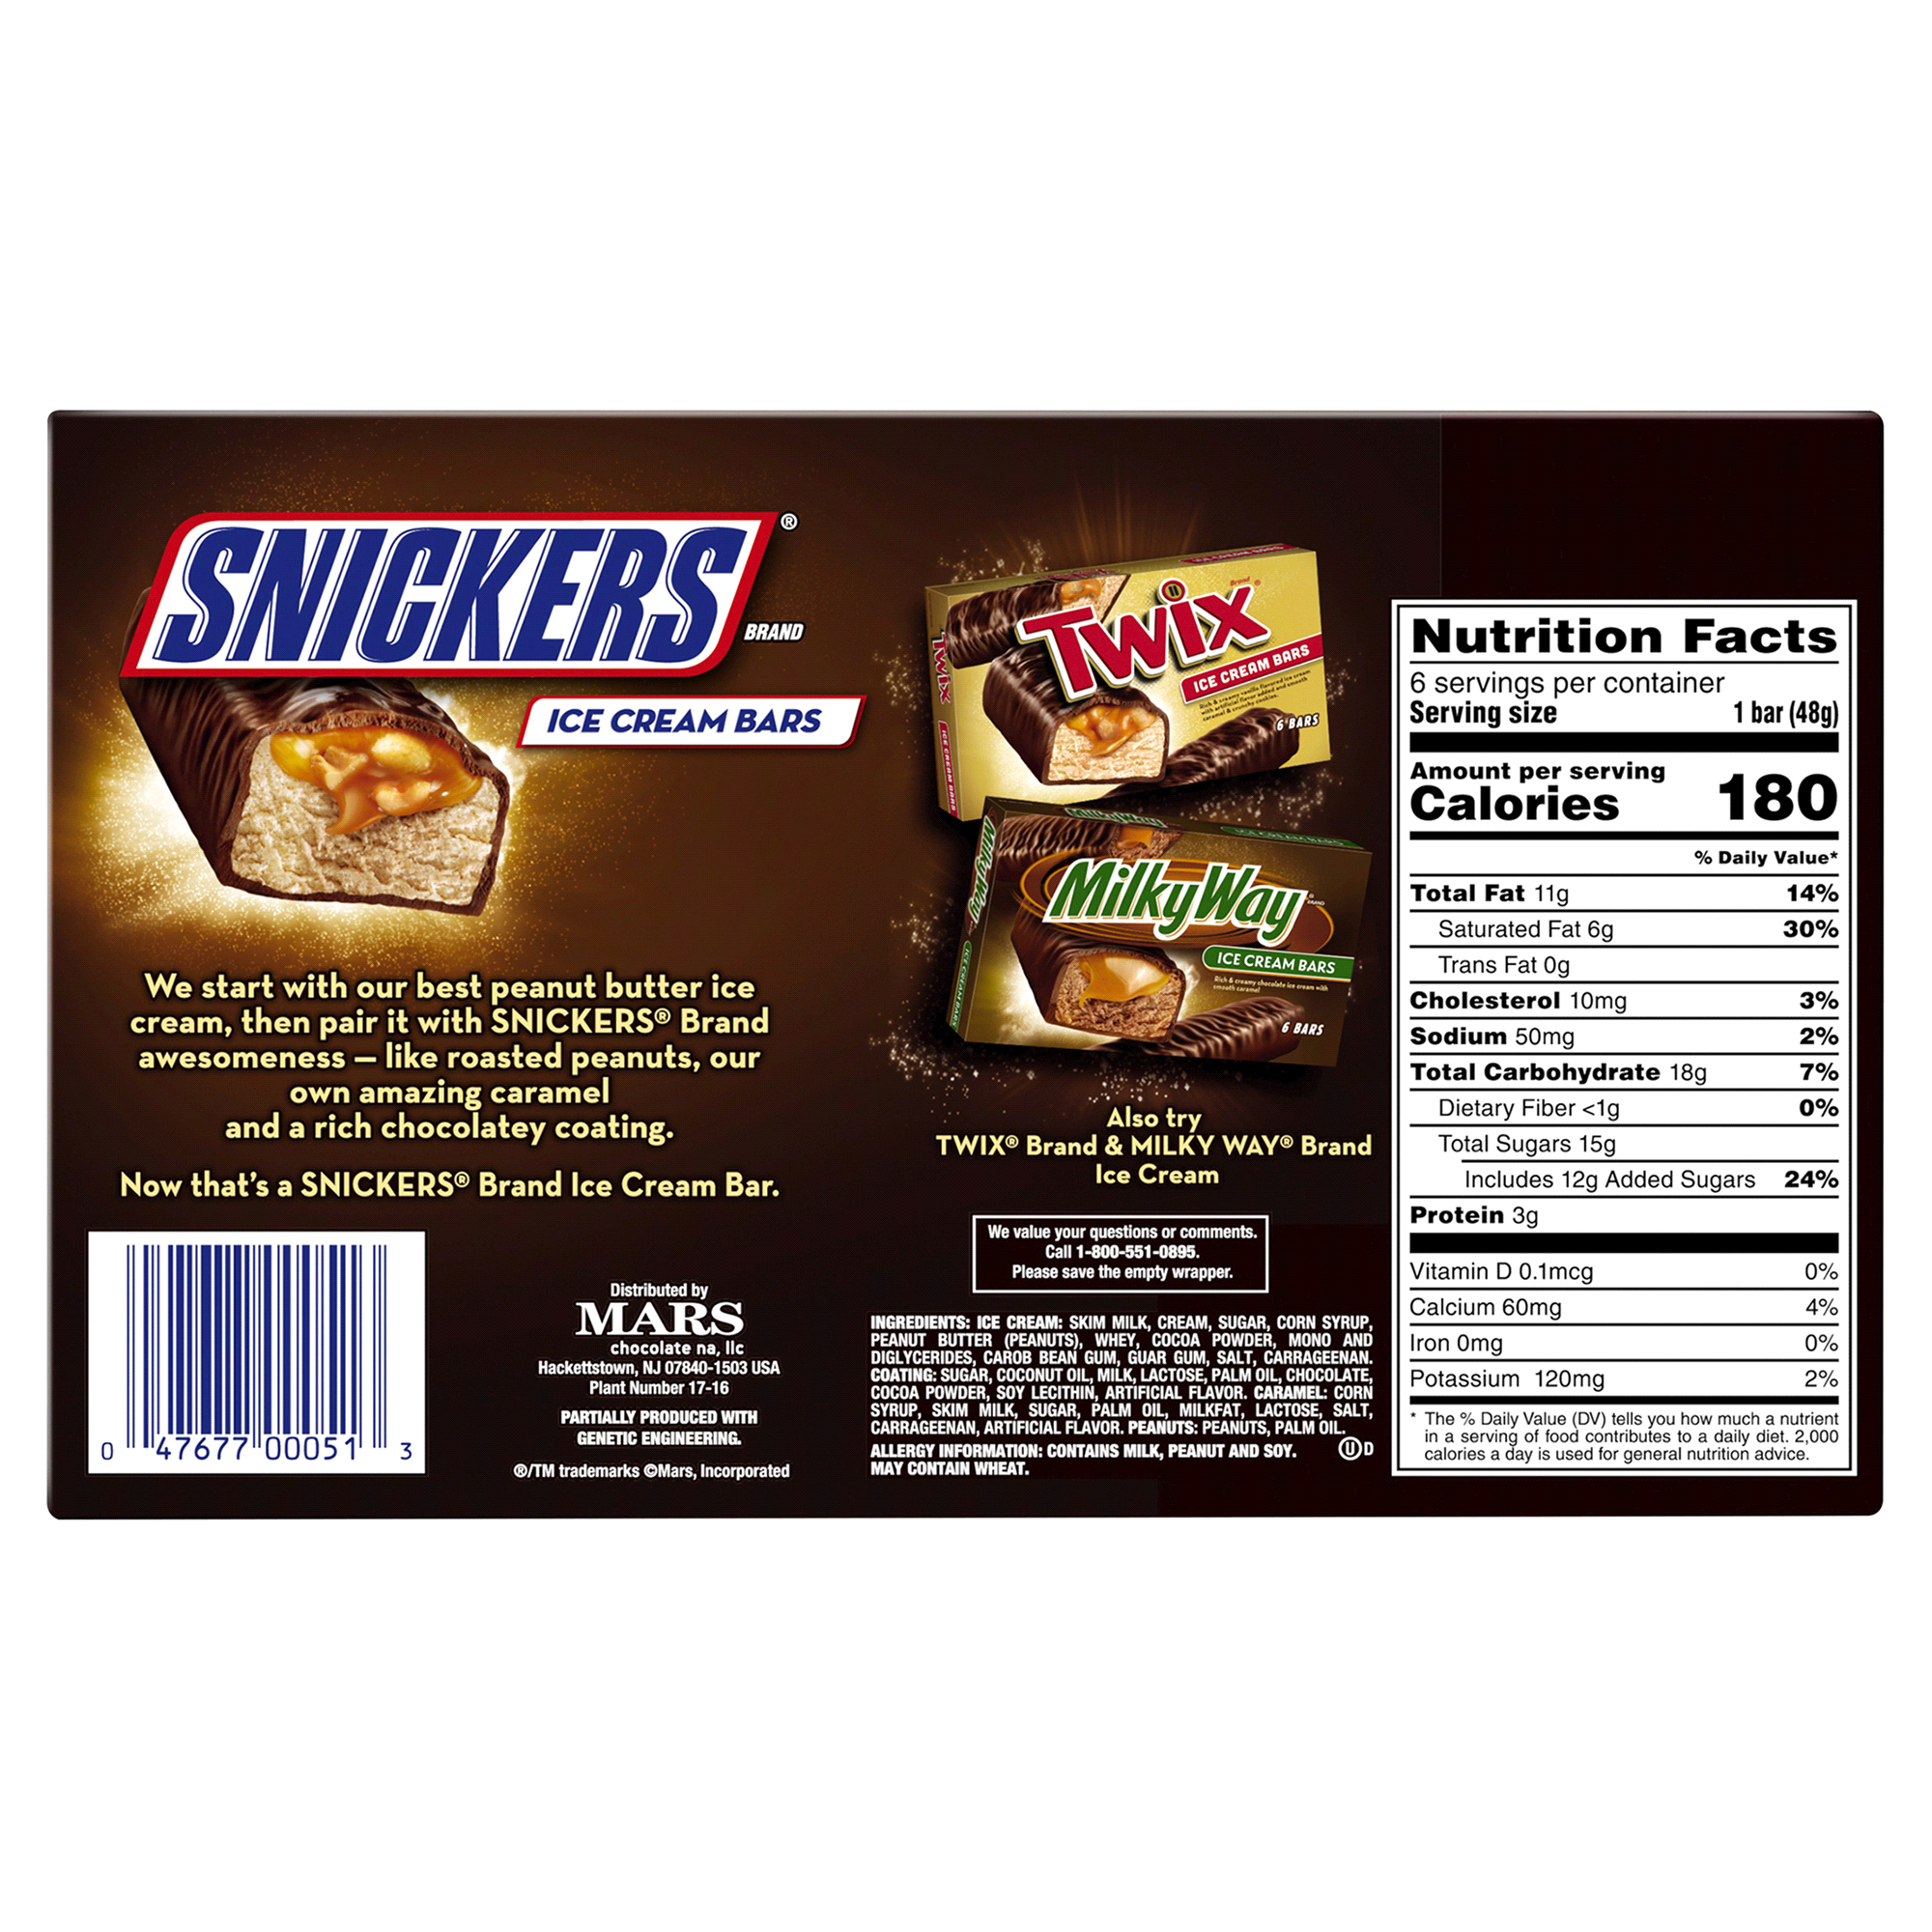 Nutrition Facts Snickers Ice Cream Bar